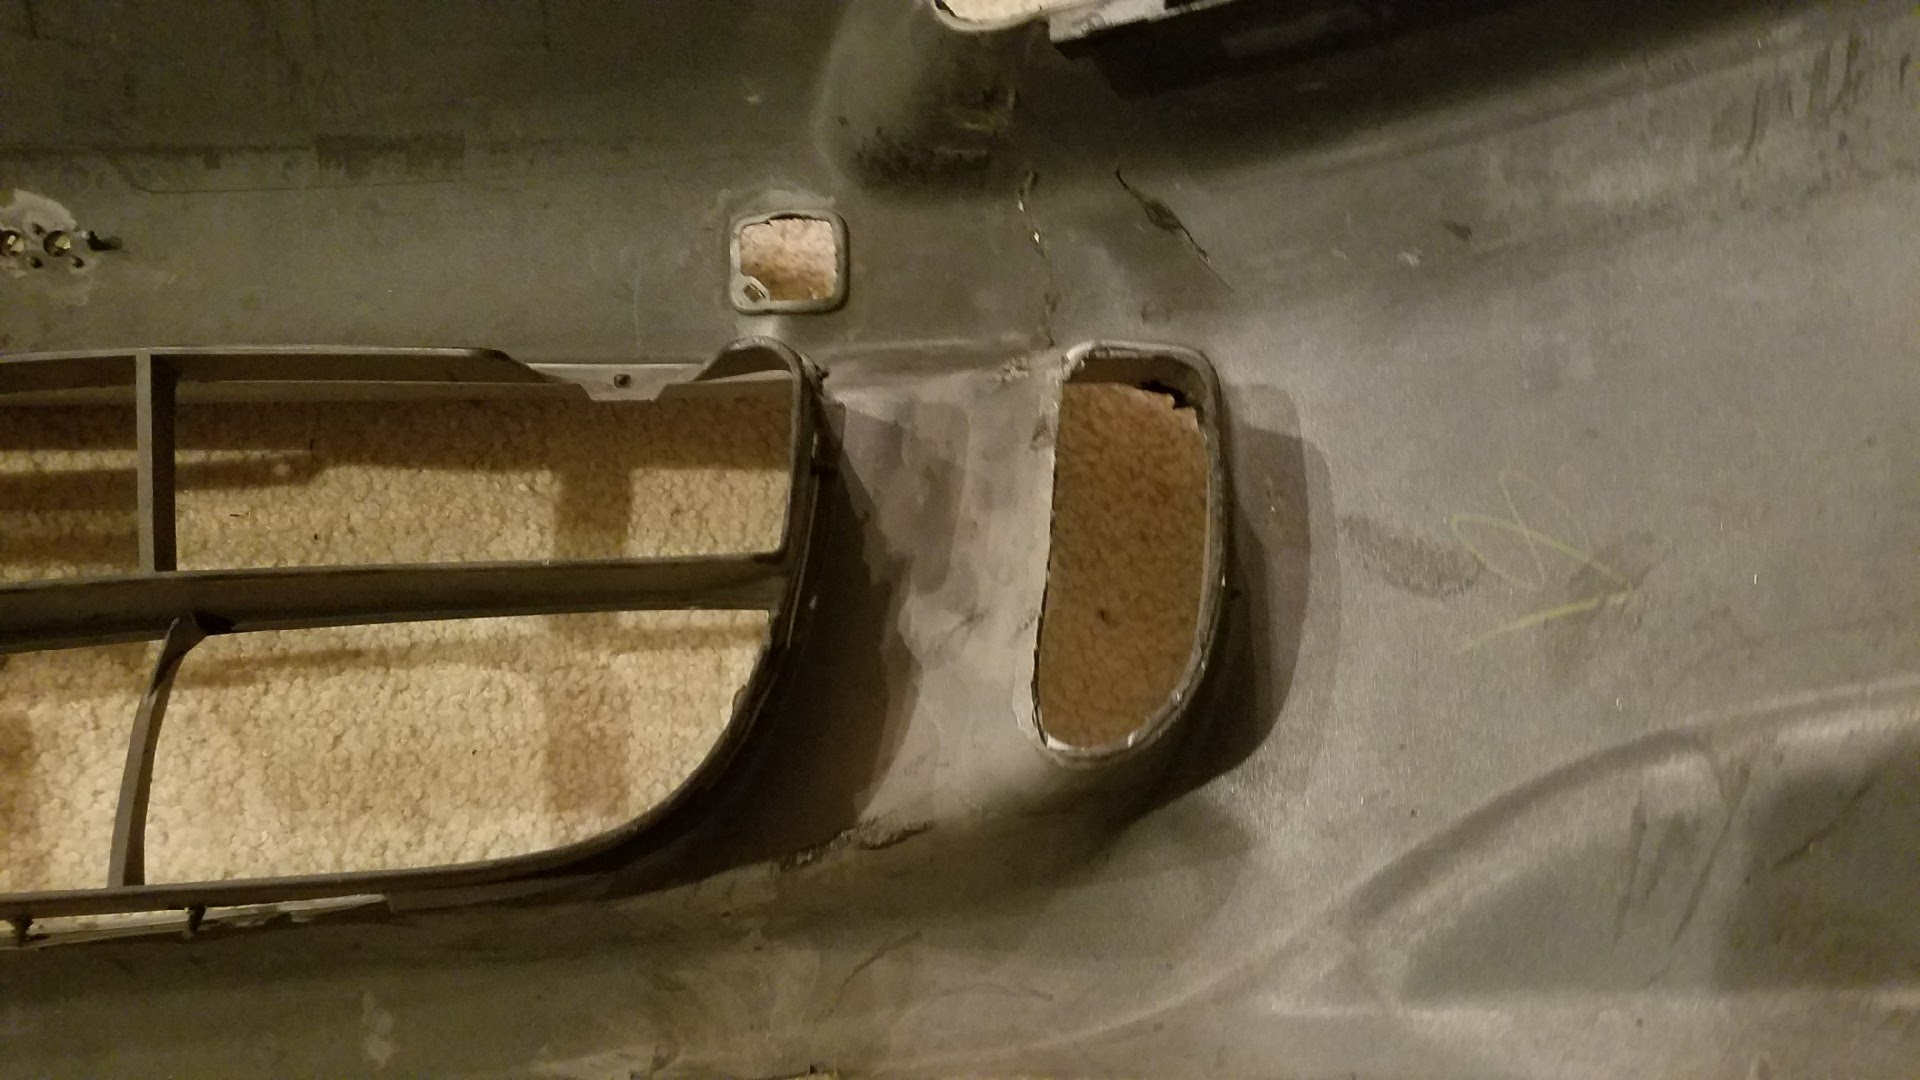 Another view of cut bumper